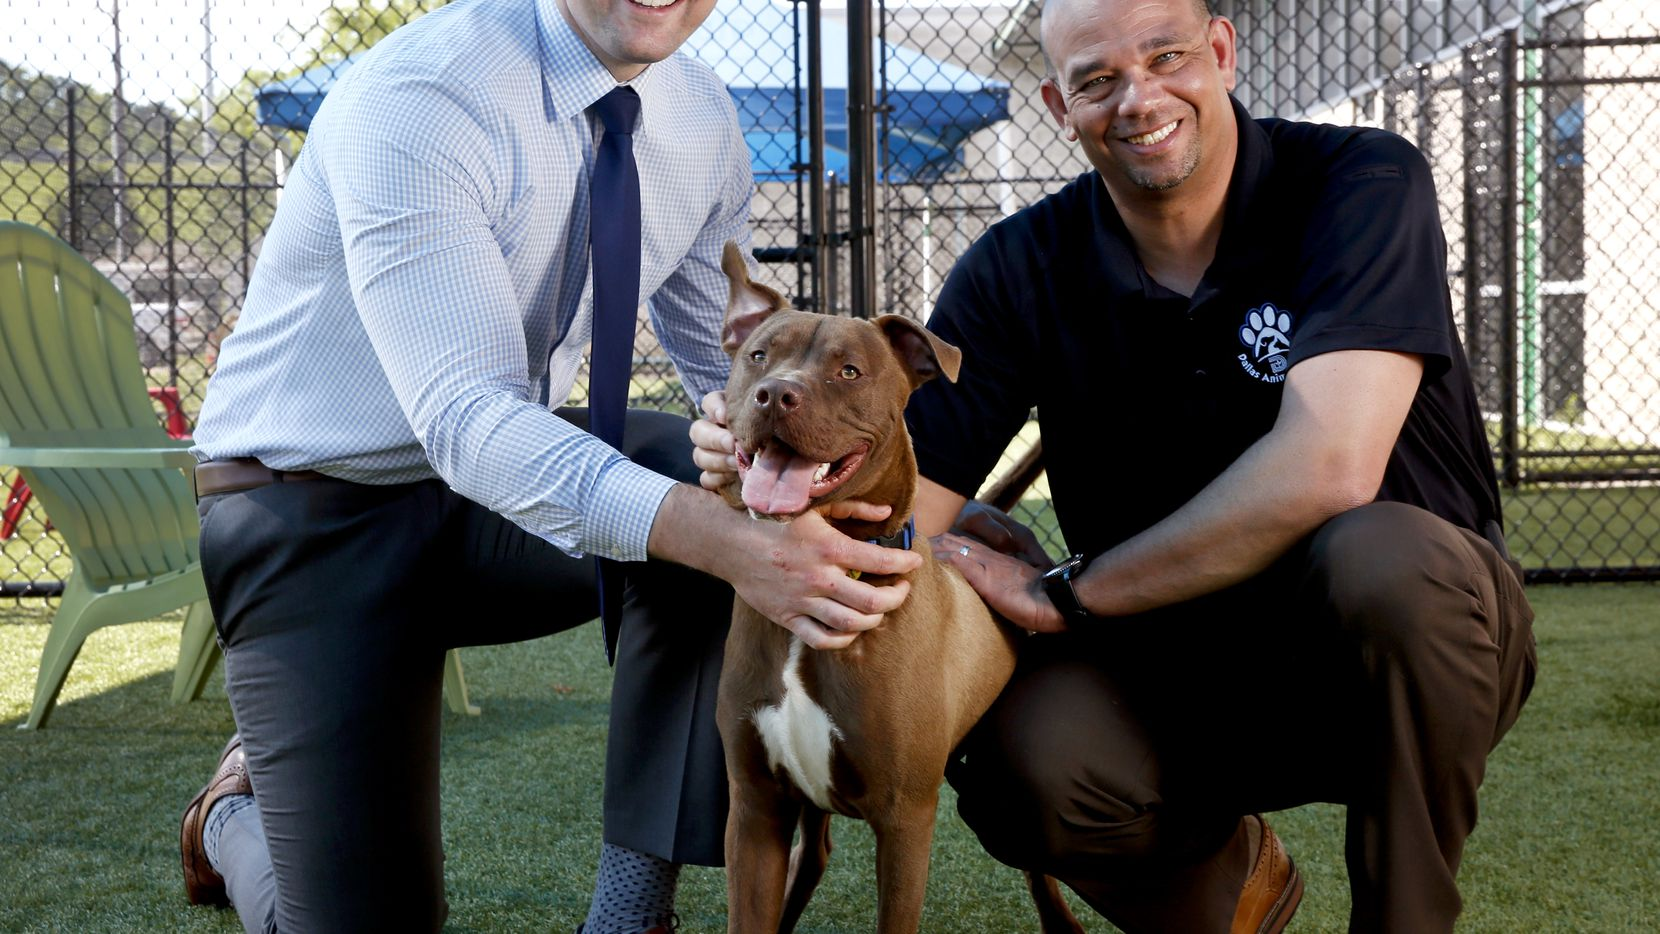 Ed Jamison (right), director of Dallas Animal Services, and Ryan Rogers, assistant director of Dallas Animal Services, with shelter dog Roger in one of DAS' outdoor play yards at the West Dallas facility.